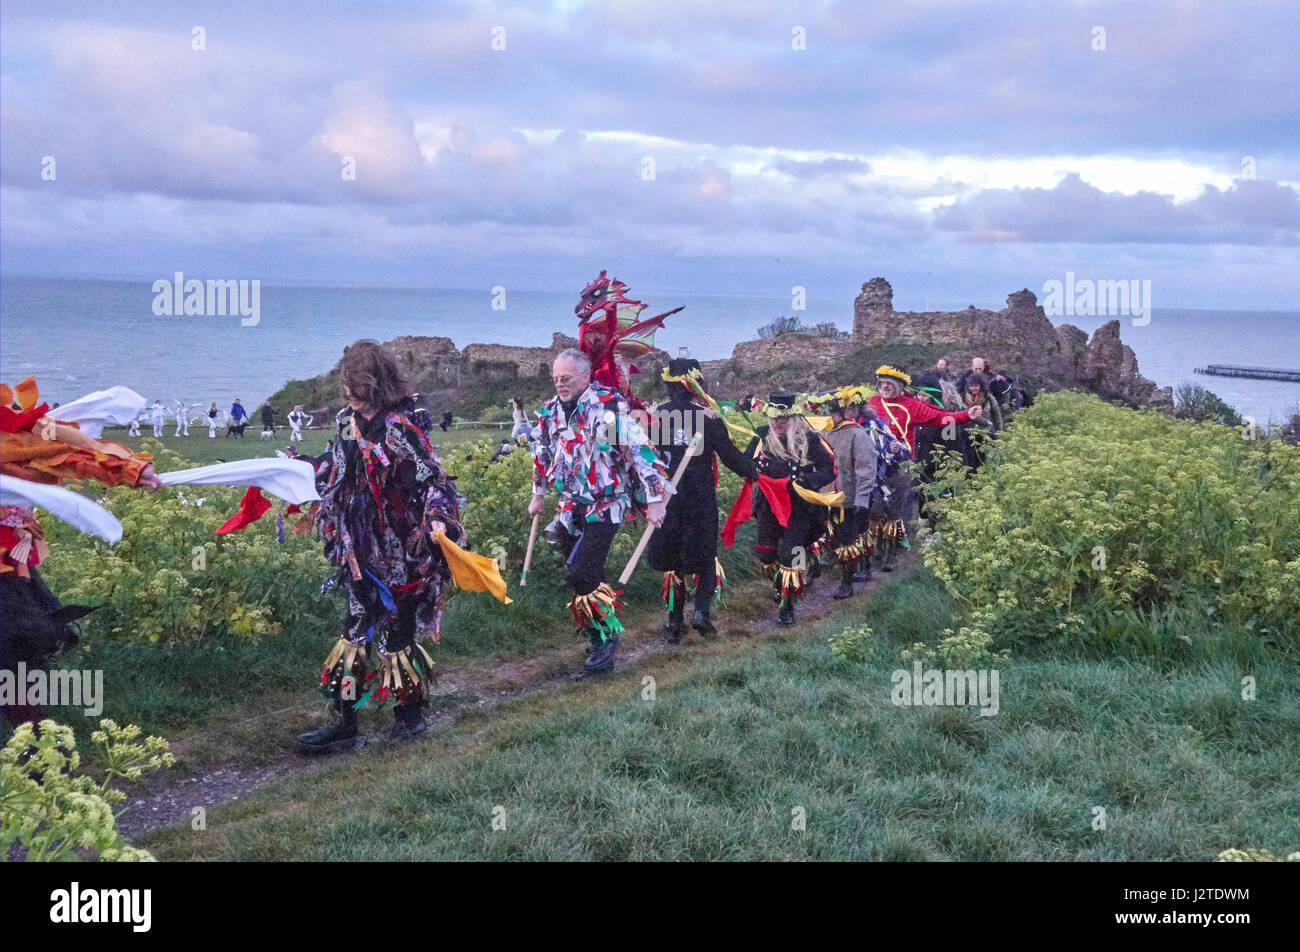 Hastings, East Sussex, UK. 1st May 2017. Revellers and spectators join the Morris Dancers by Hastings Castle at - Stock Image